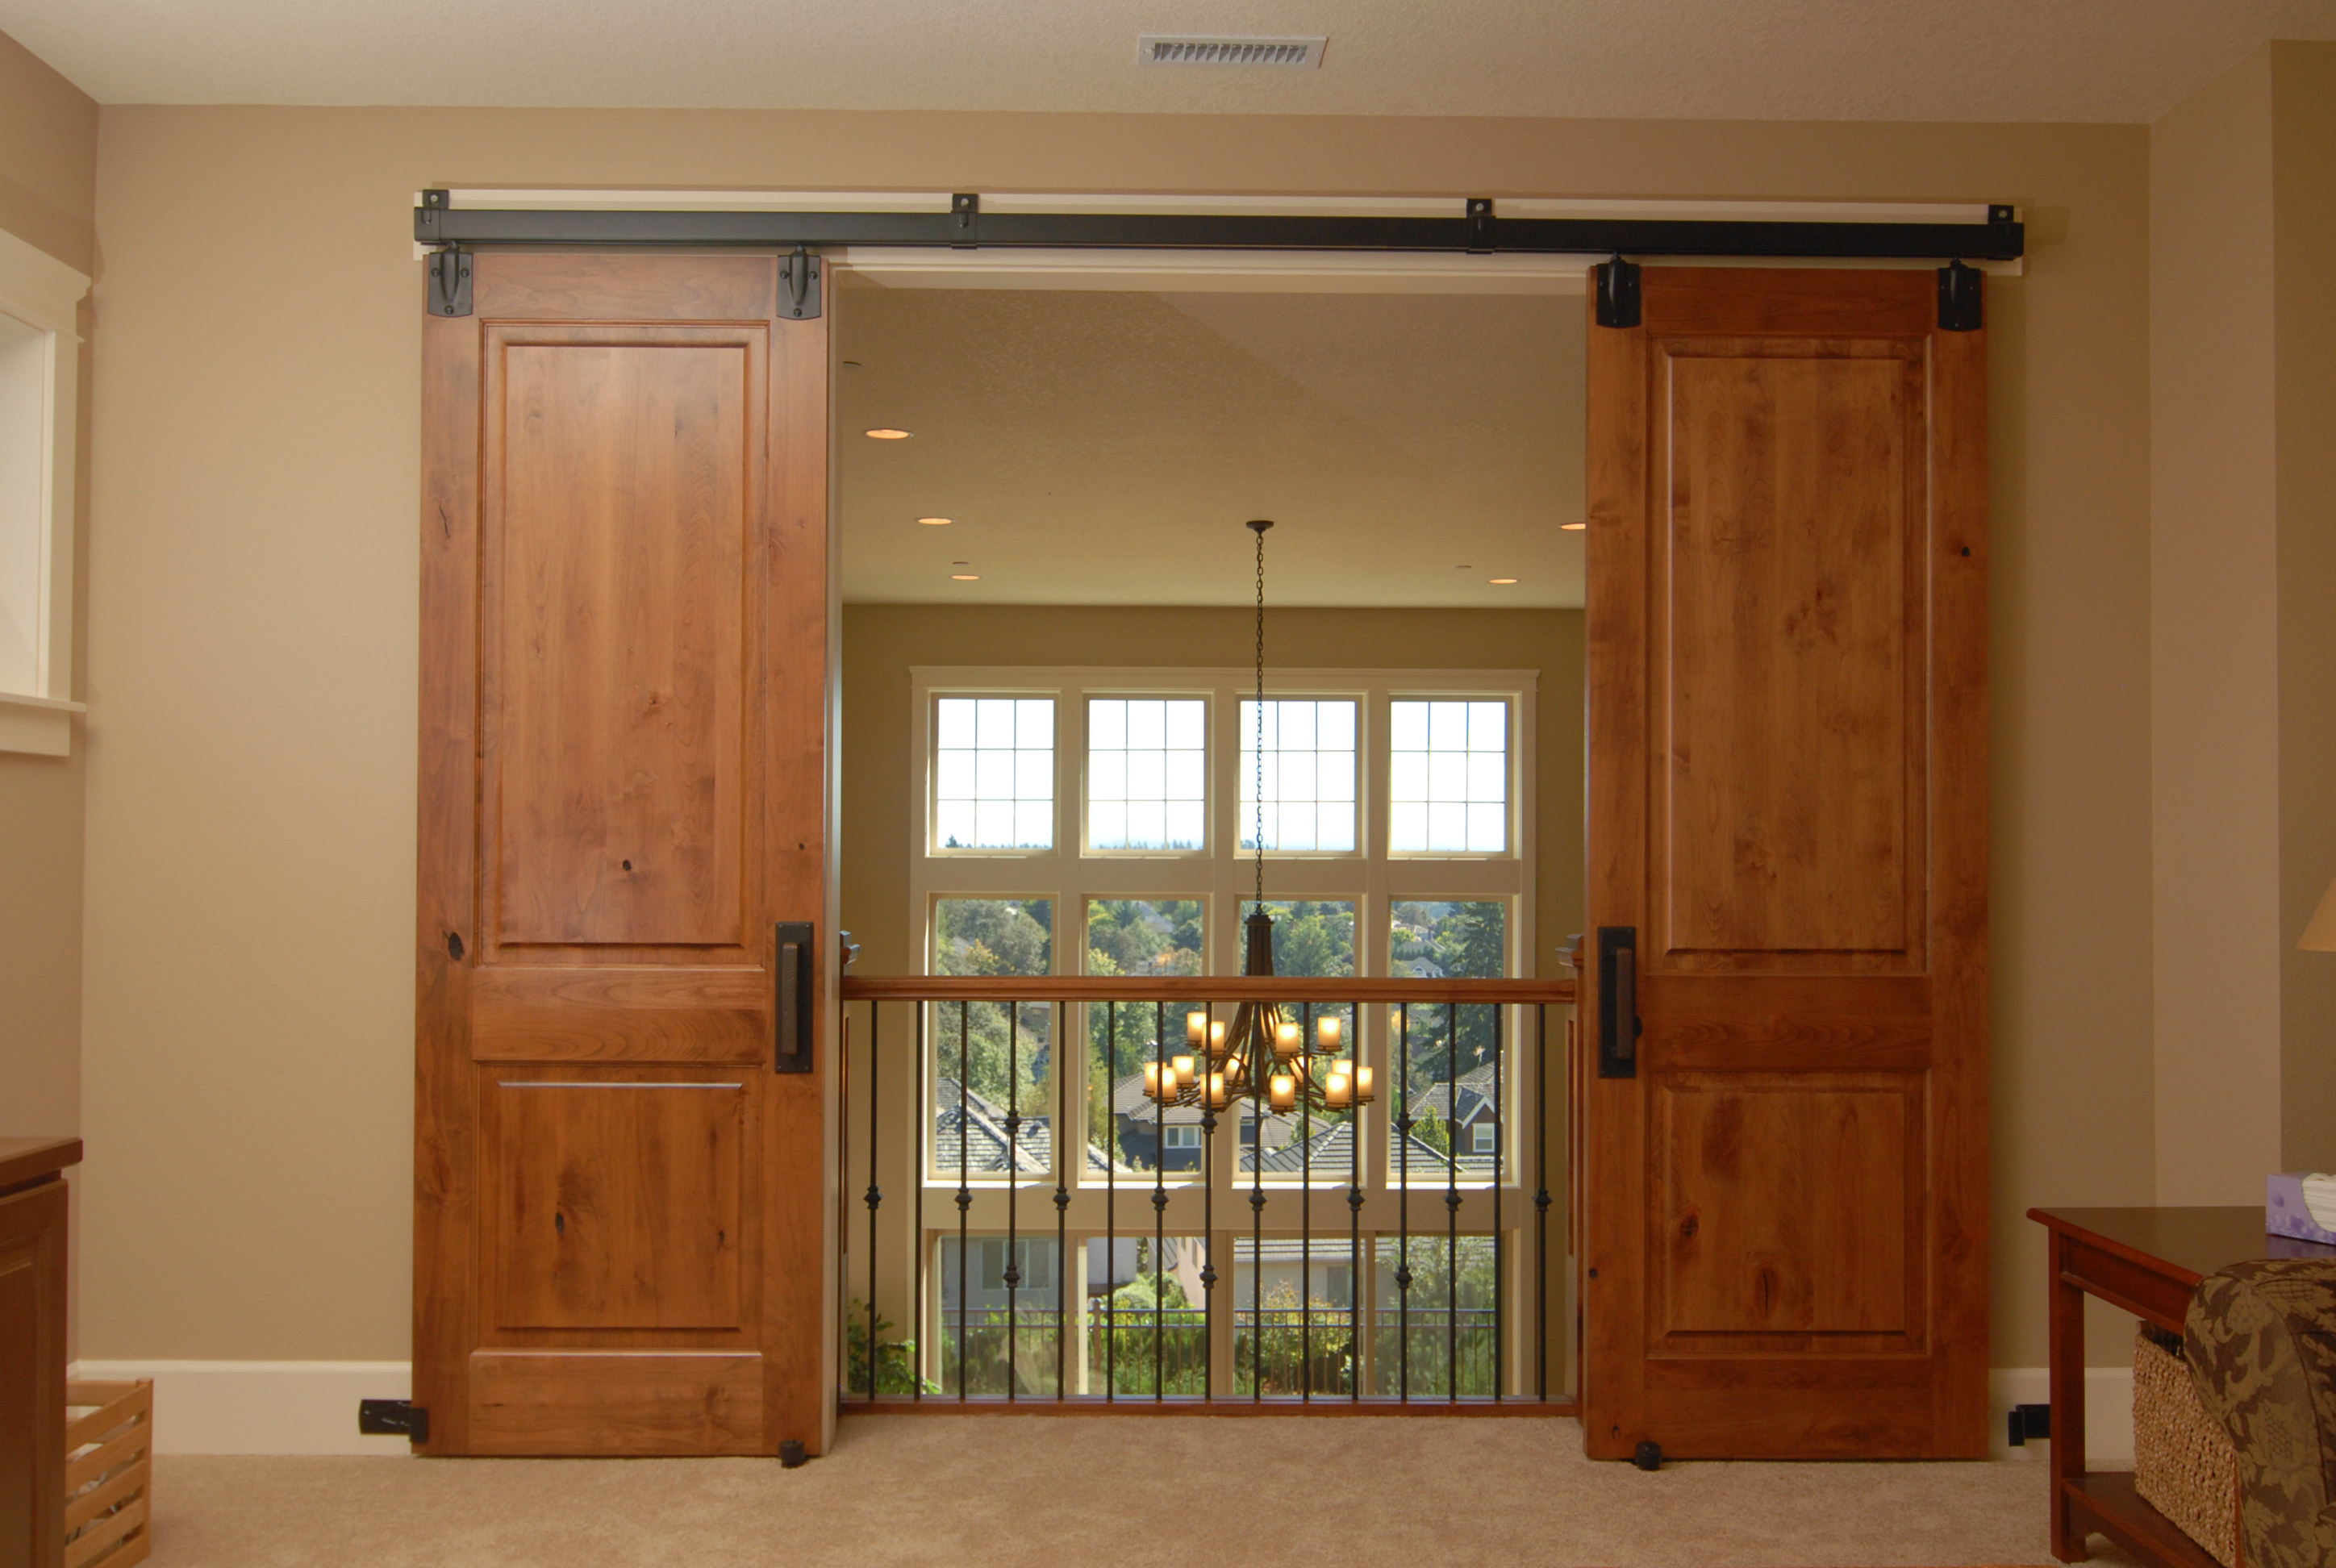 Dual Track Barn Door Hardware | Bypass Barn Doors | Bypass Barn Door Hardware